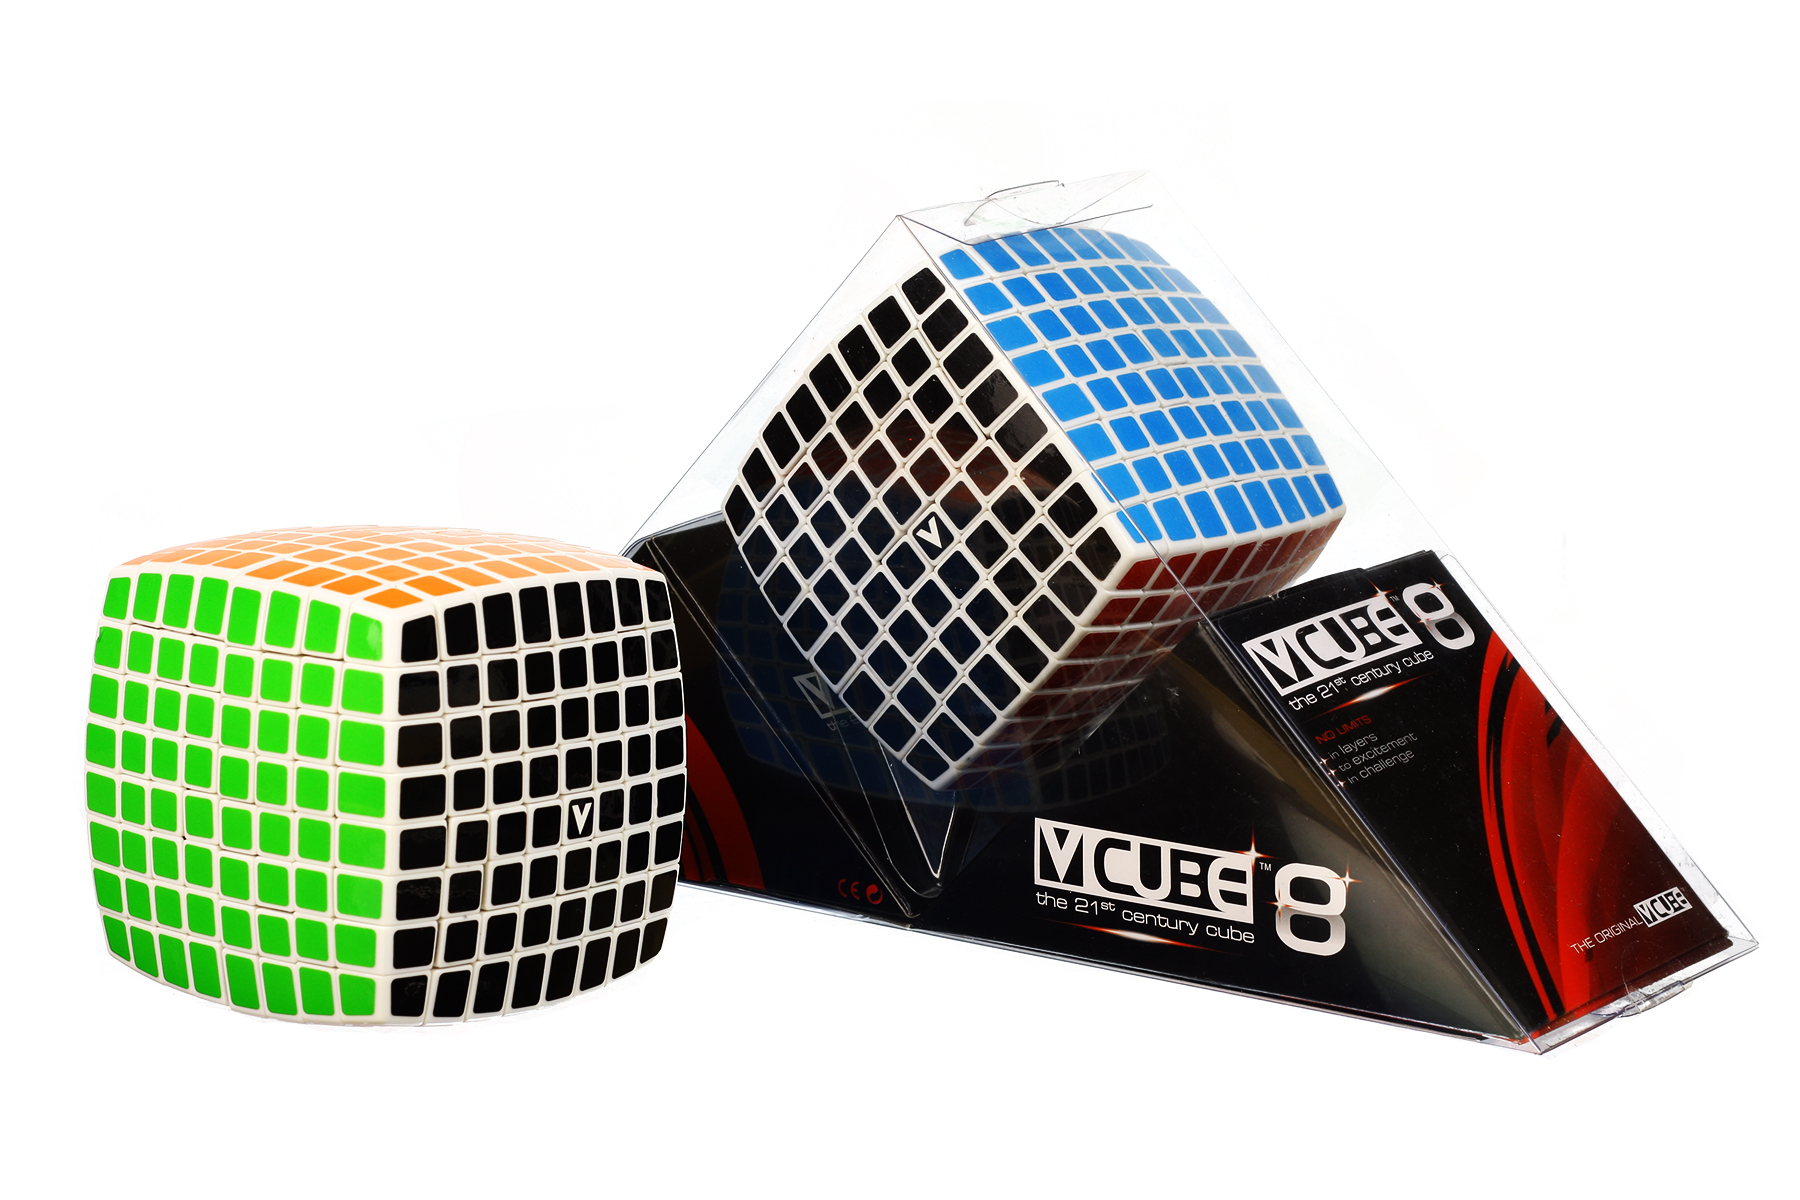 New for 2014: The V-CUBE 8